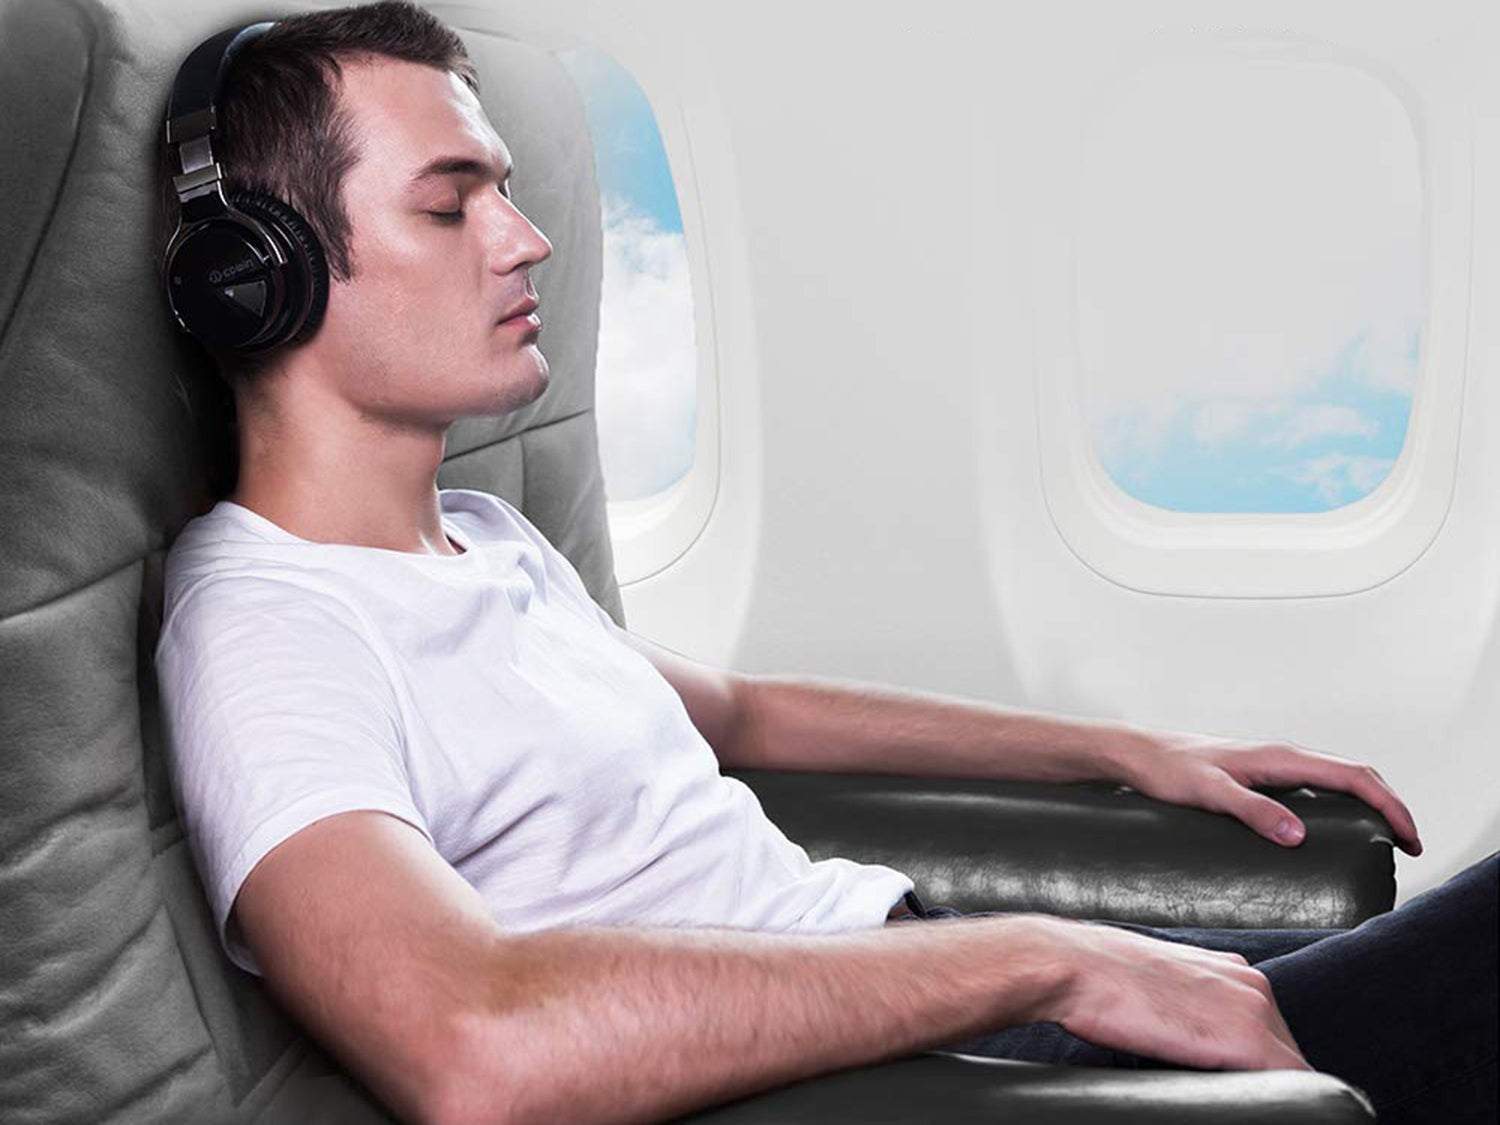 Man wearing noise-cancelling headphones on a plane.